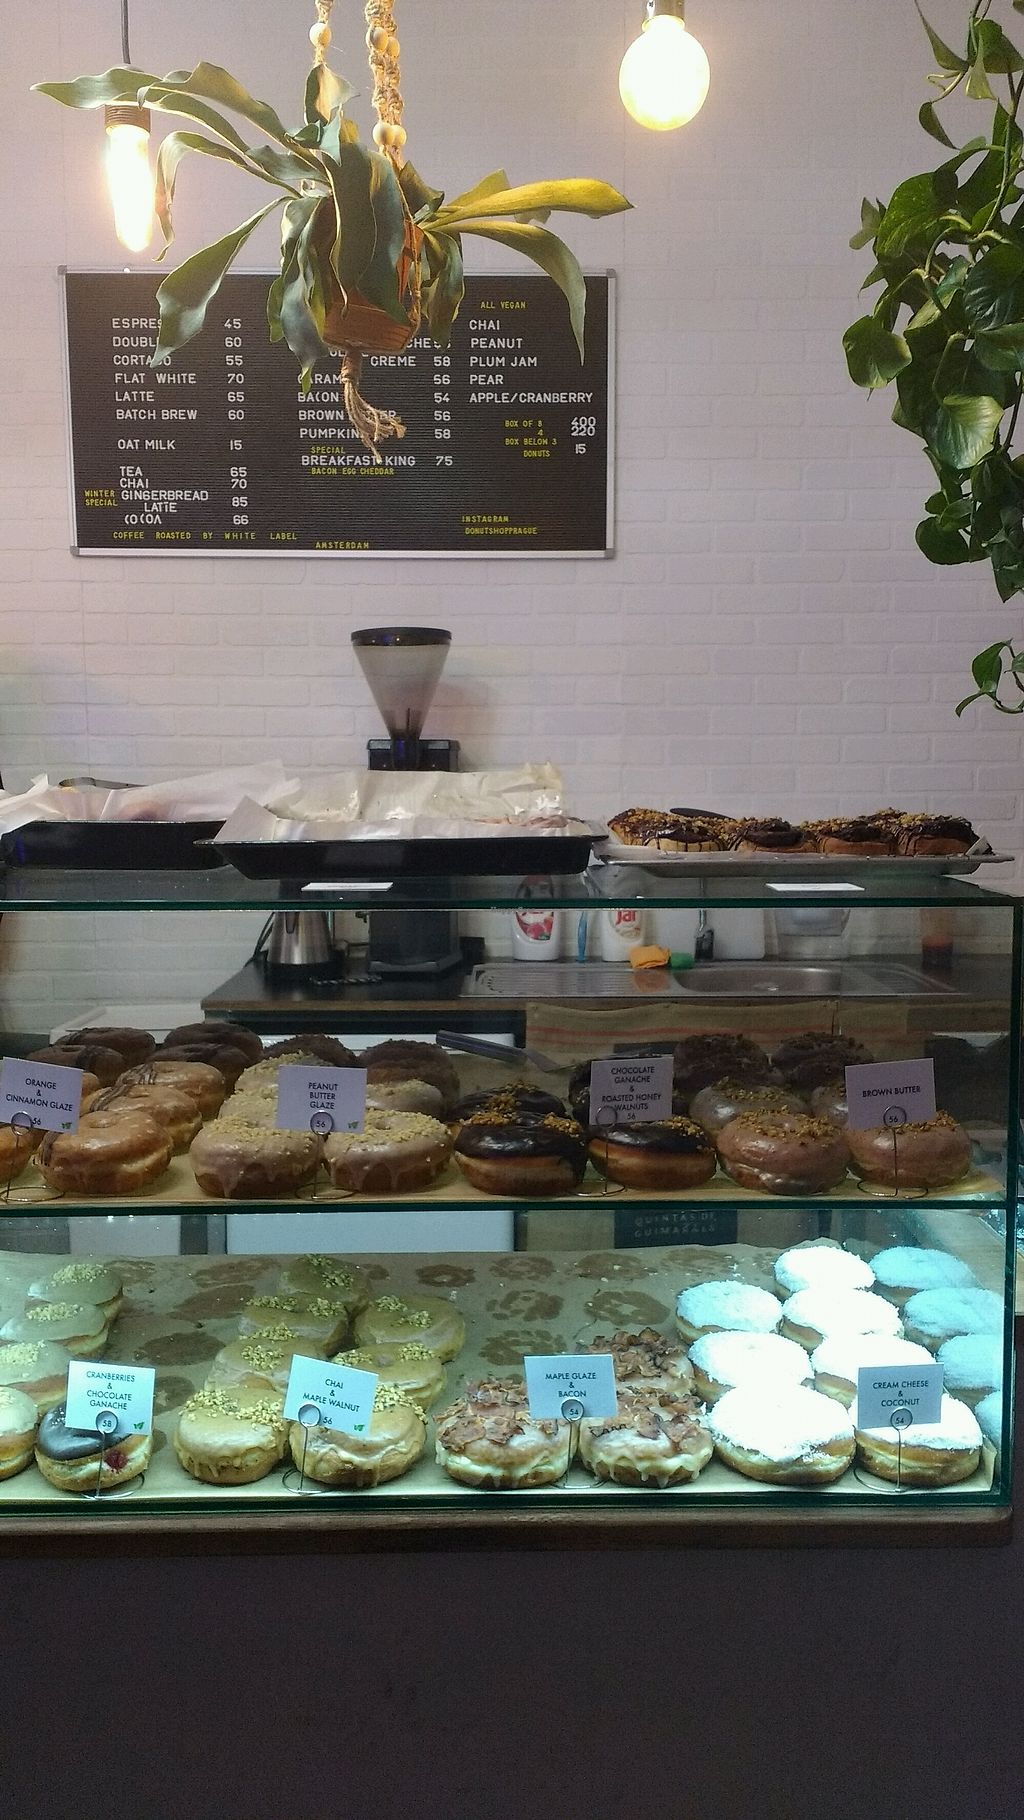 """Photo of Donut Shop  by <a href=""""/members/profile/lilScorpio"""">lilScorpio</a> <br/>tasty donut selection <br/> January 10, 2018  - <a href='/contact/abuse/image/97758/345104'>Report</a>"""